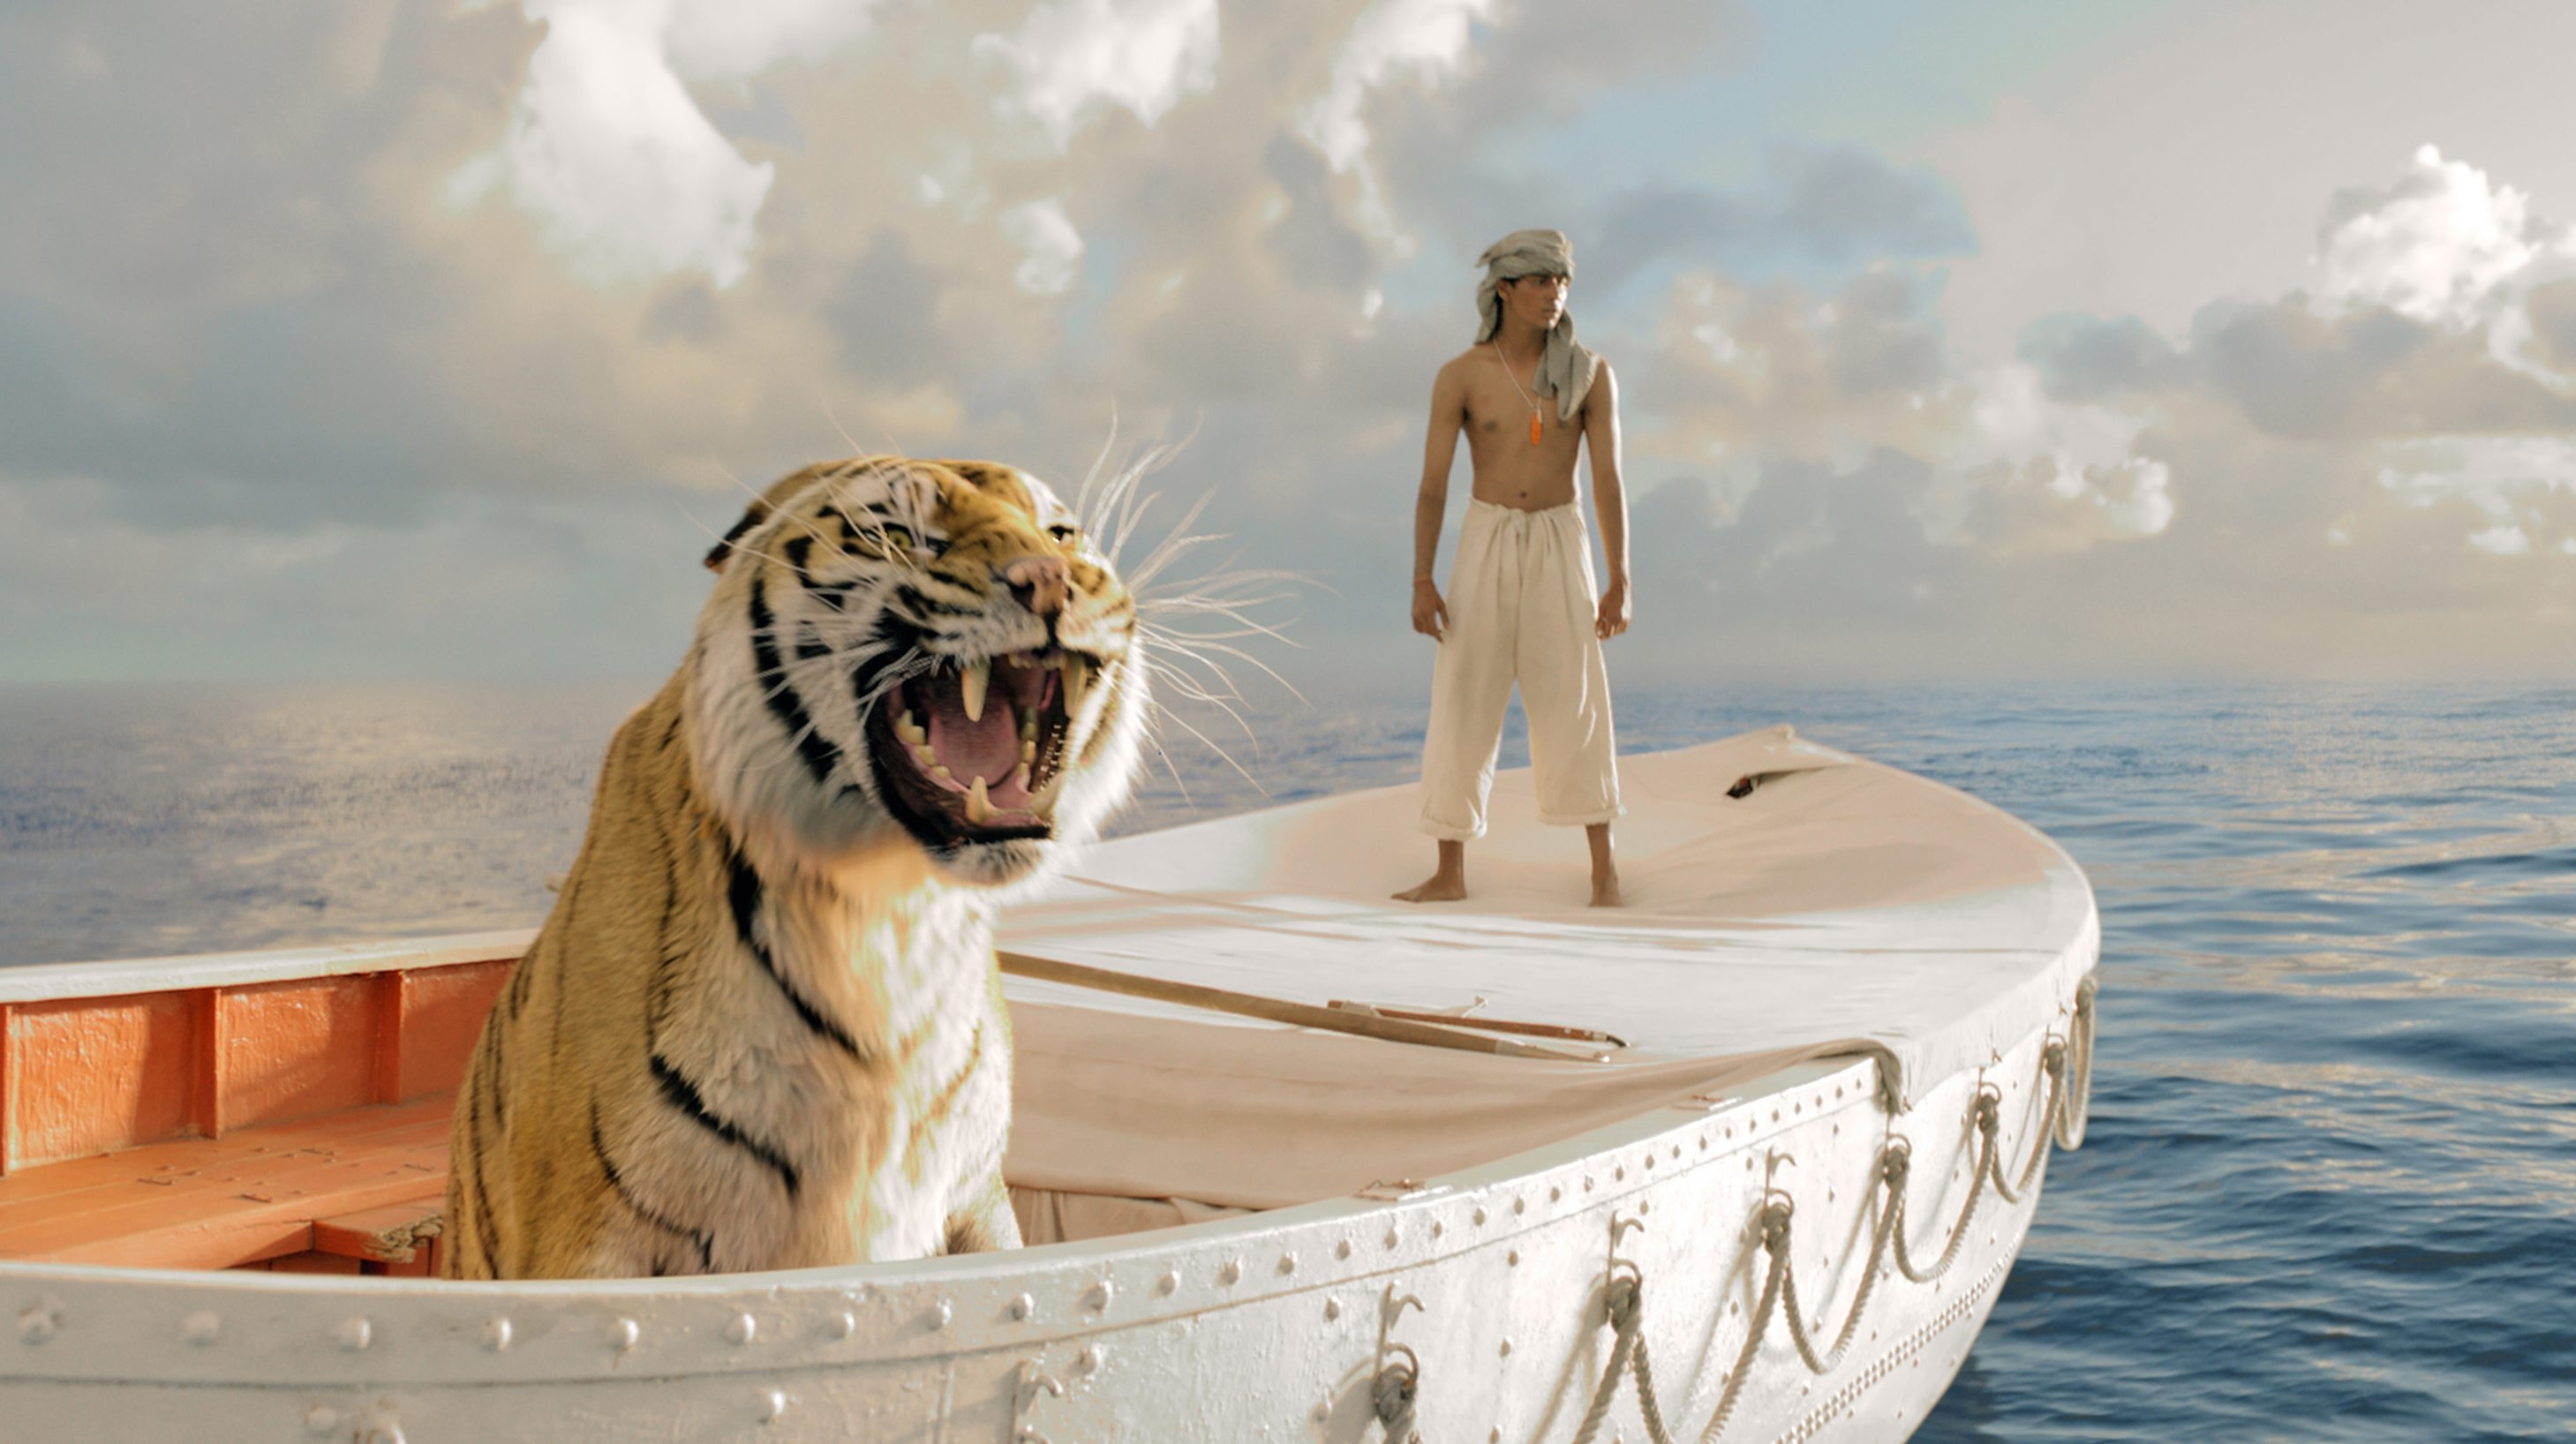 Pi Patel (Suraj Sharma) and a tiger named Richard Parker must rely on each other to survive.